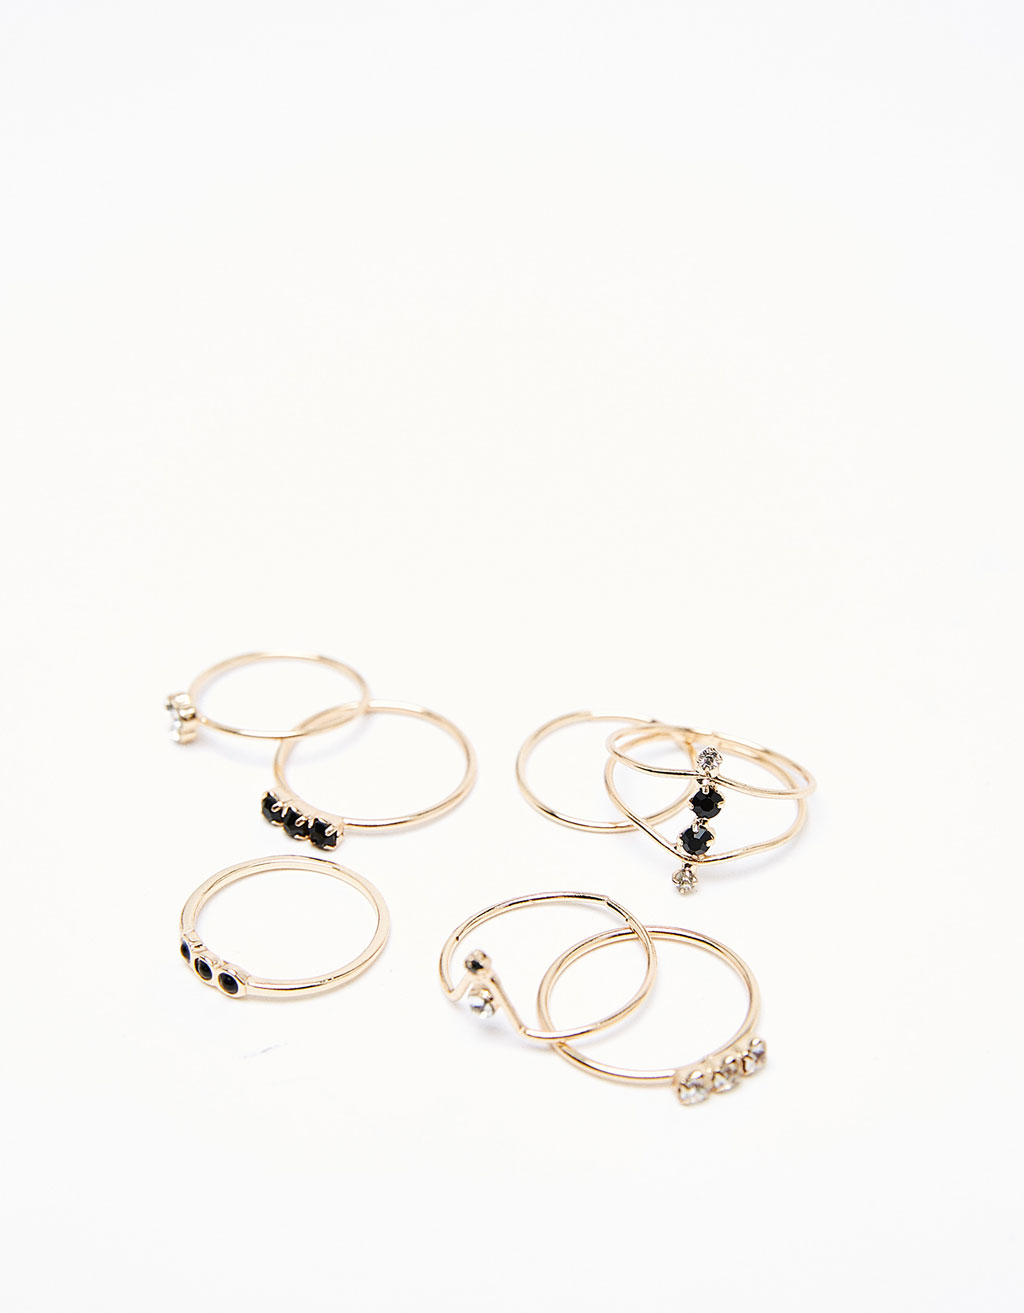 Set of minimalist rings